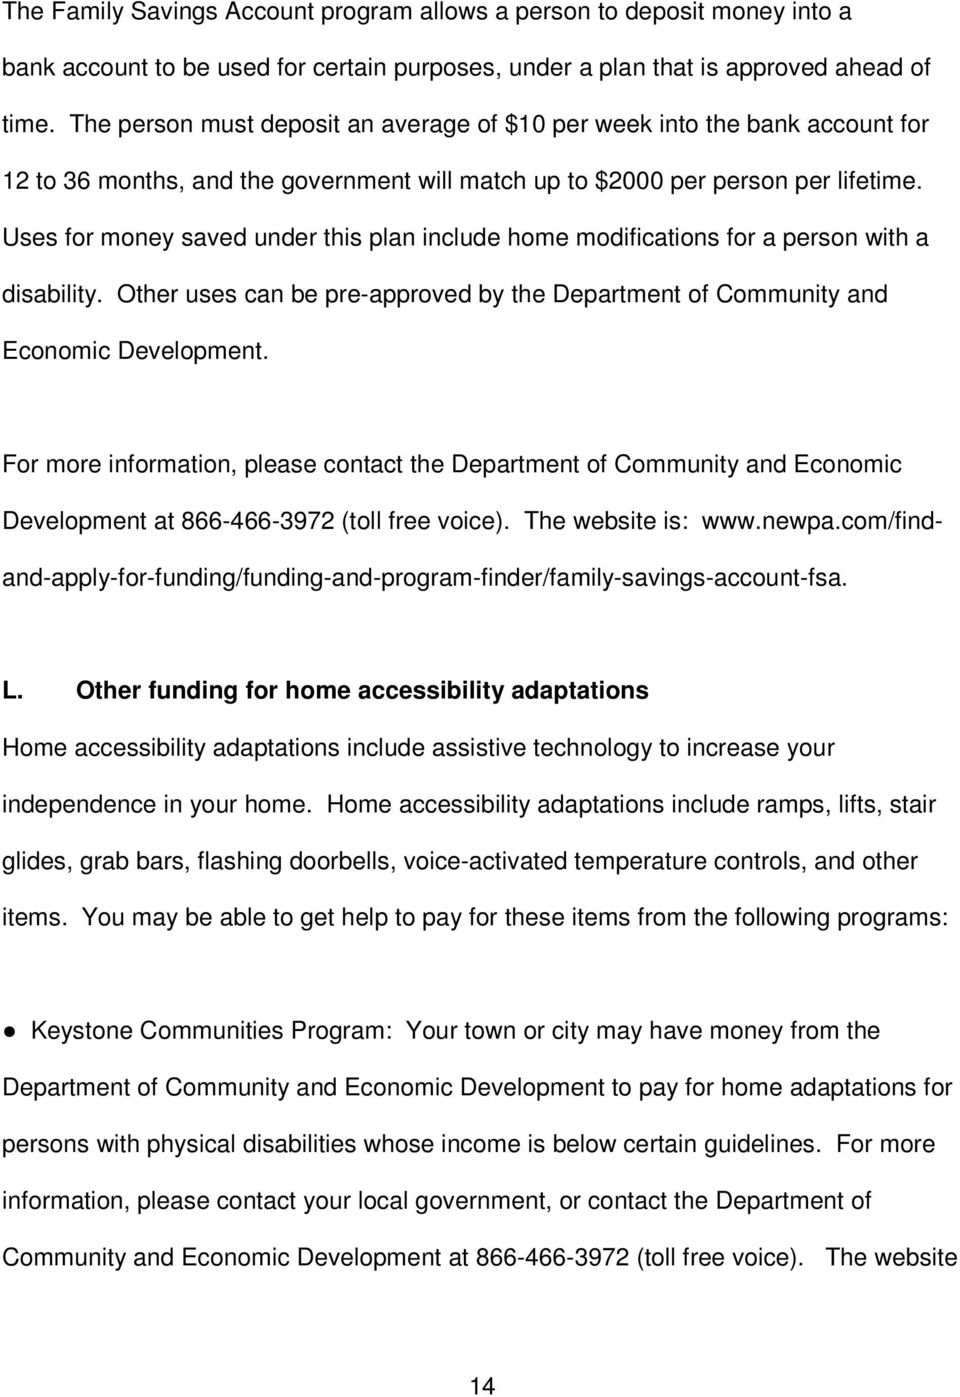 Uses for money saved under this plan include home modifications for a person with a disability. Other uses can be pre-approved by the Department of Community and Economic Development.